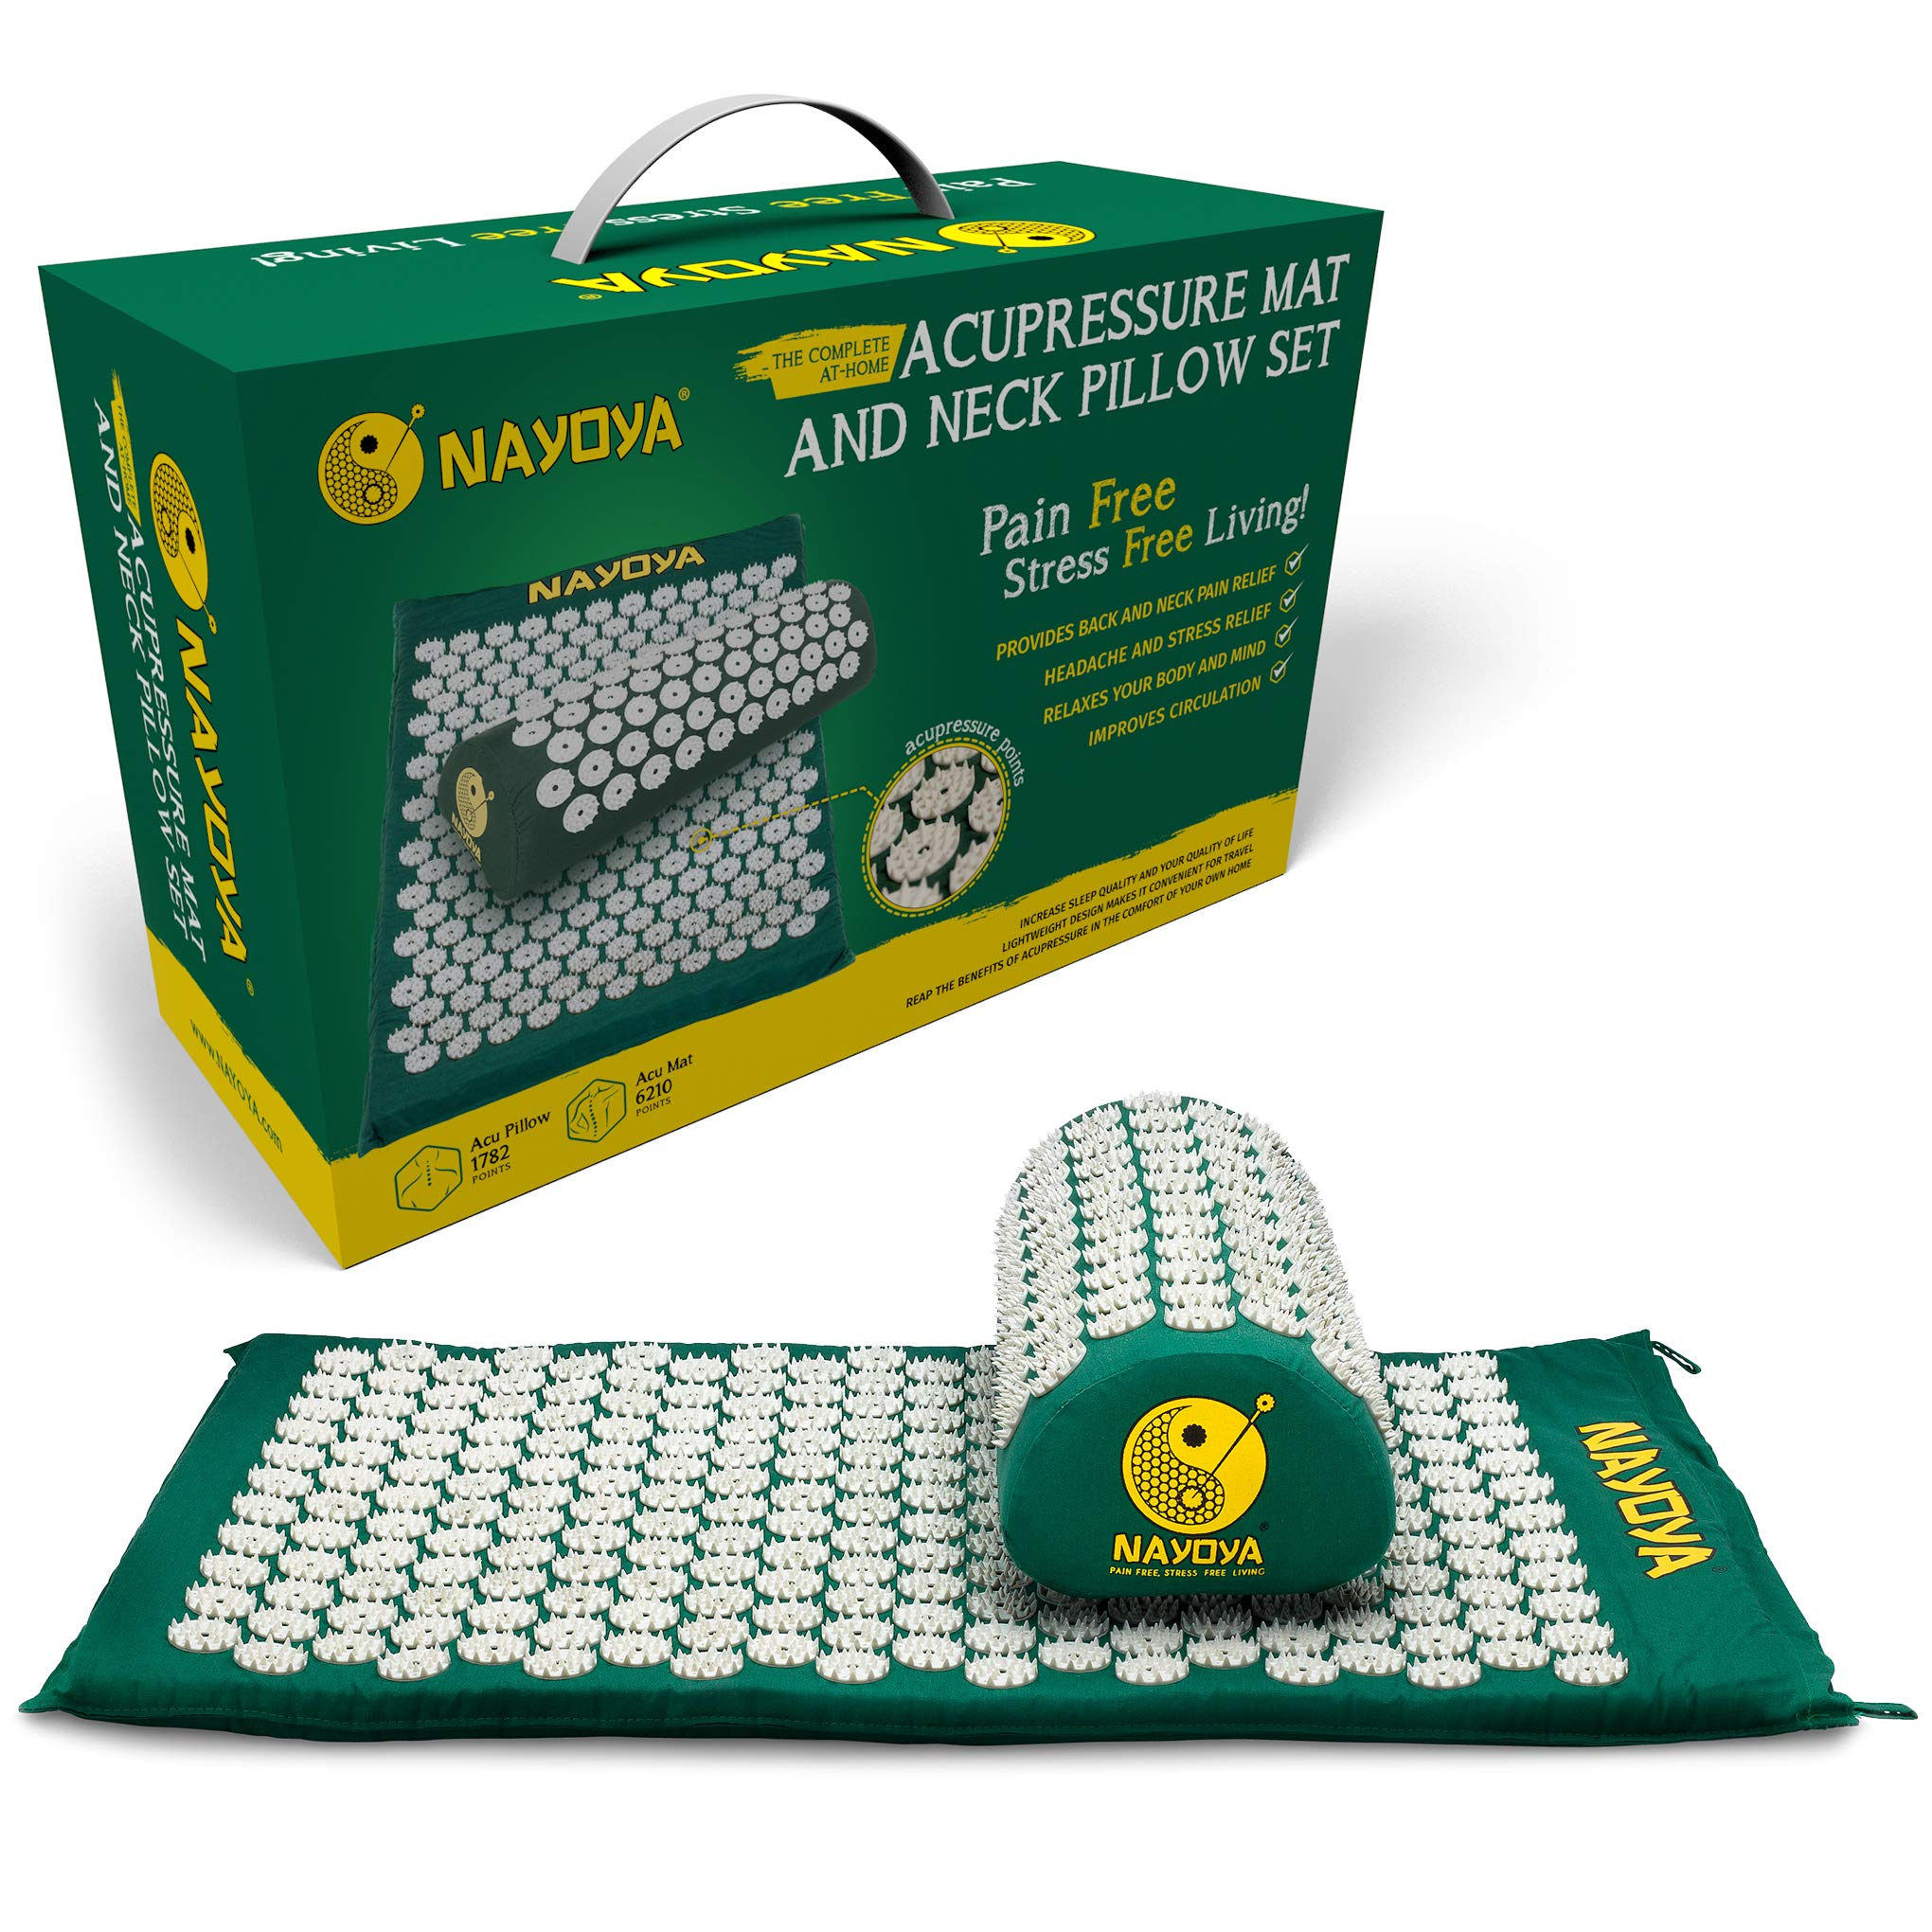 Nayoya Back and Neck Pain Relief - Acupressure Mat and Pillow Set - Relieves Stress, Back, Neck, and Sciatic Pain - Comes in a Carry Case for Storage and Travel - As Seen in USA Today by NAYOYA